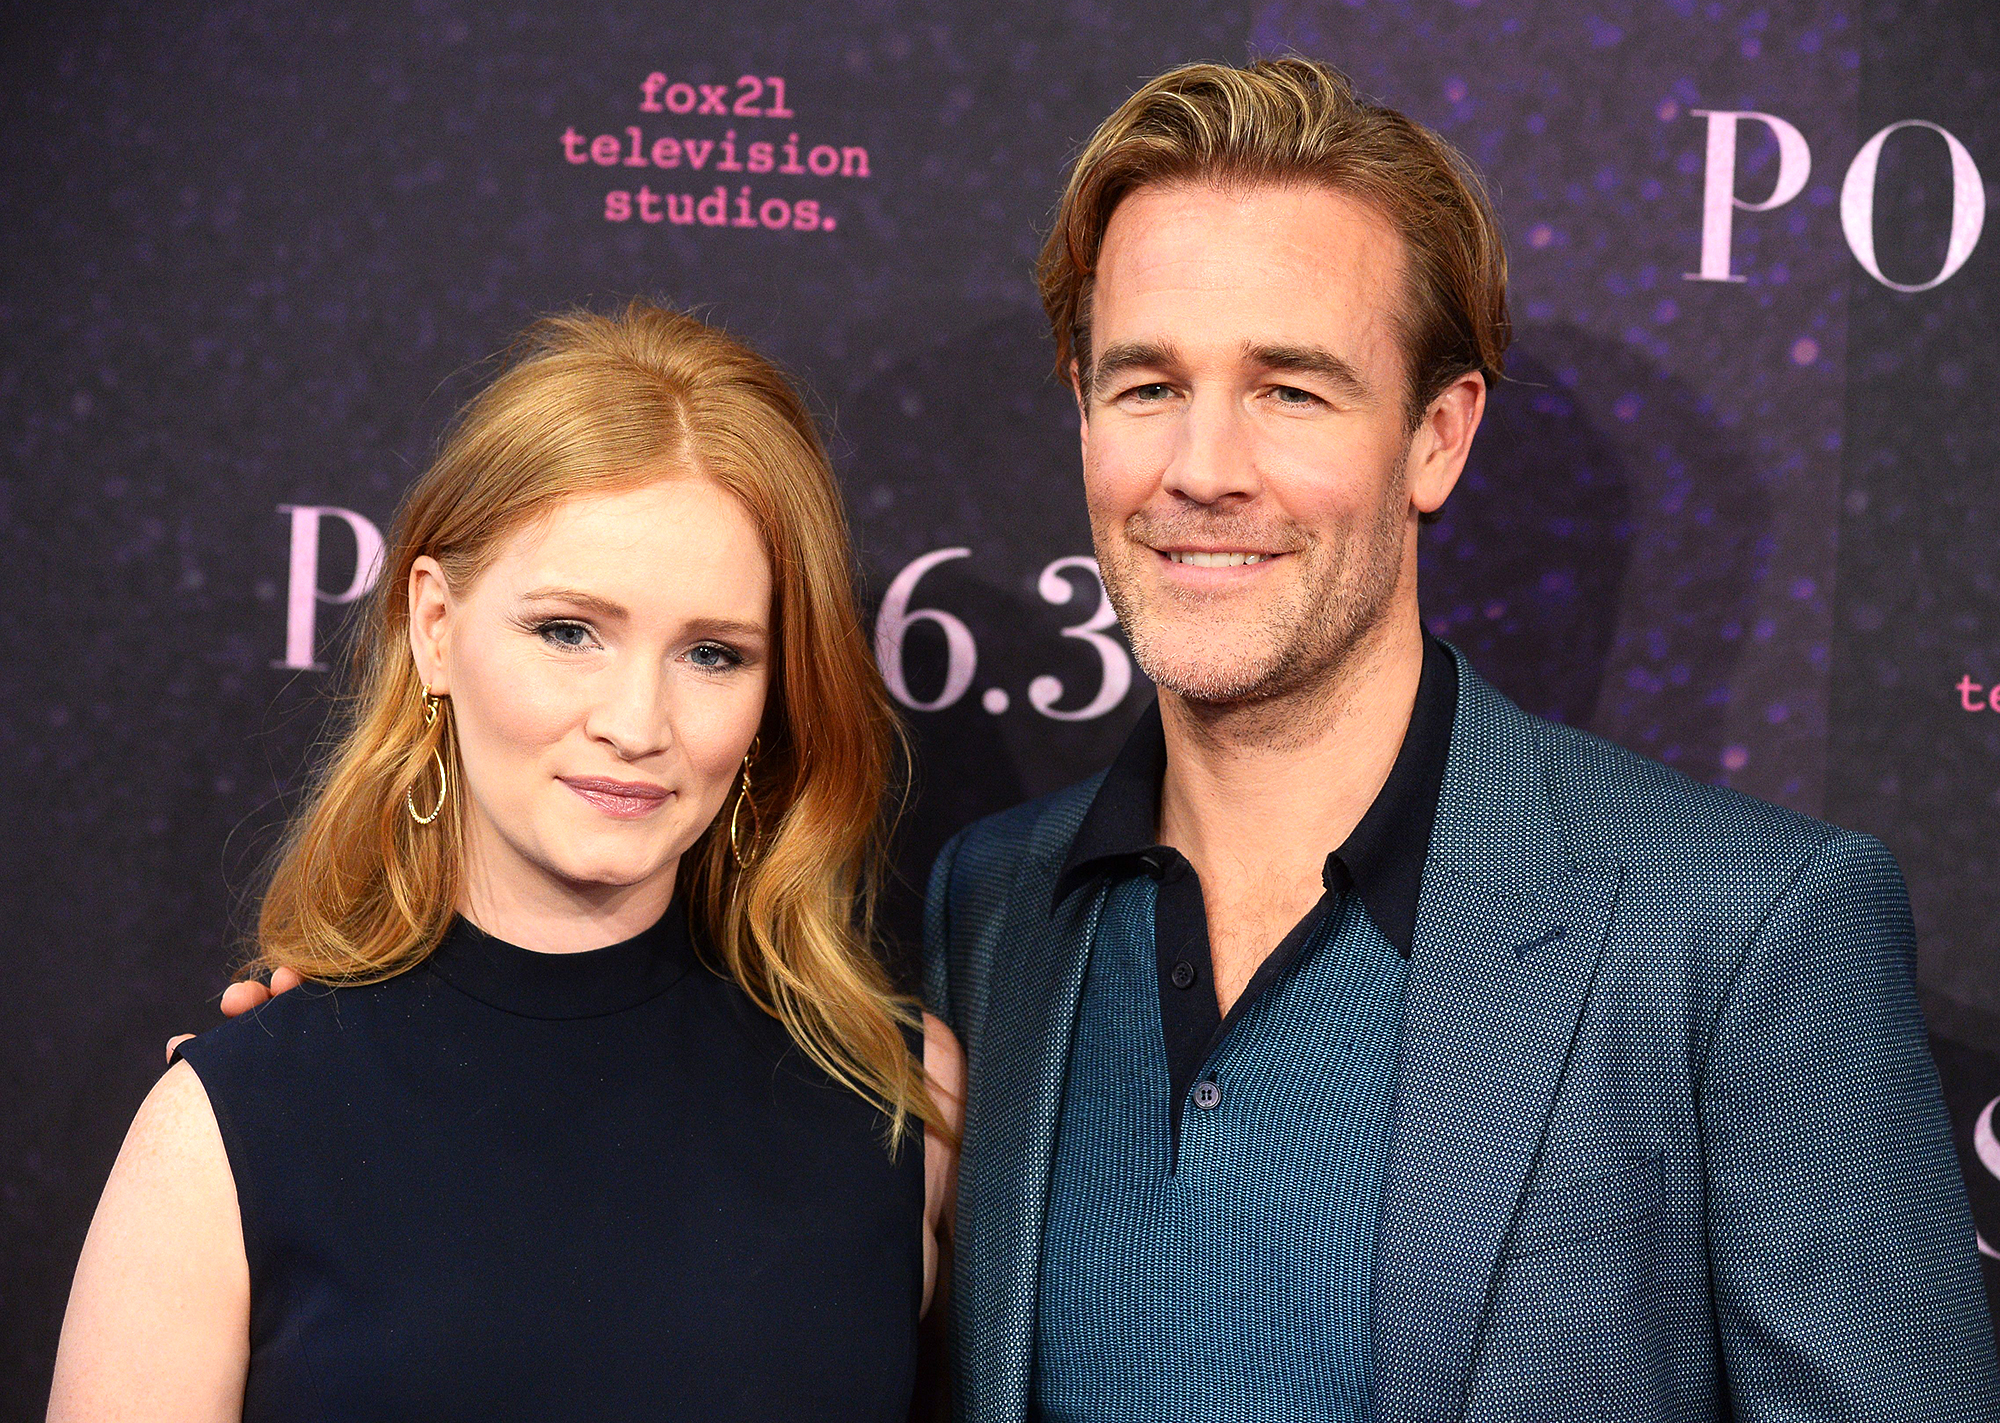 Kimberly-Van-Der-Beek-Is-'35-Lbs-More-Than'-Her-Normal-Weight-After-Miscarriage-2